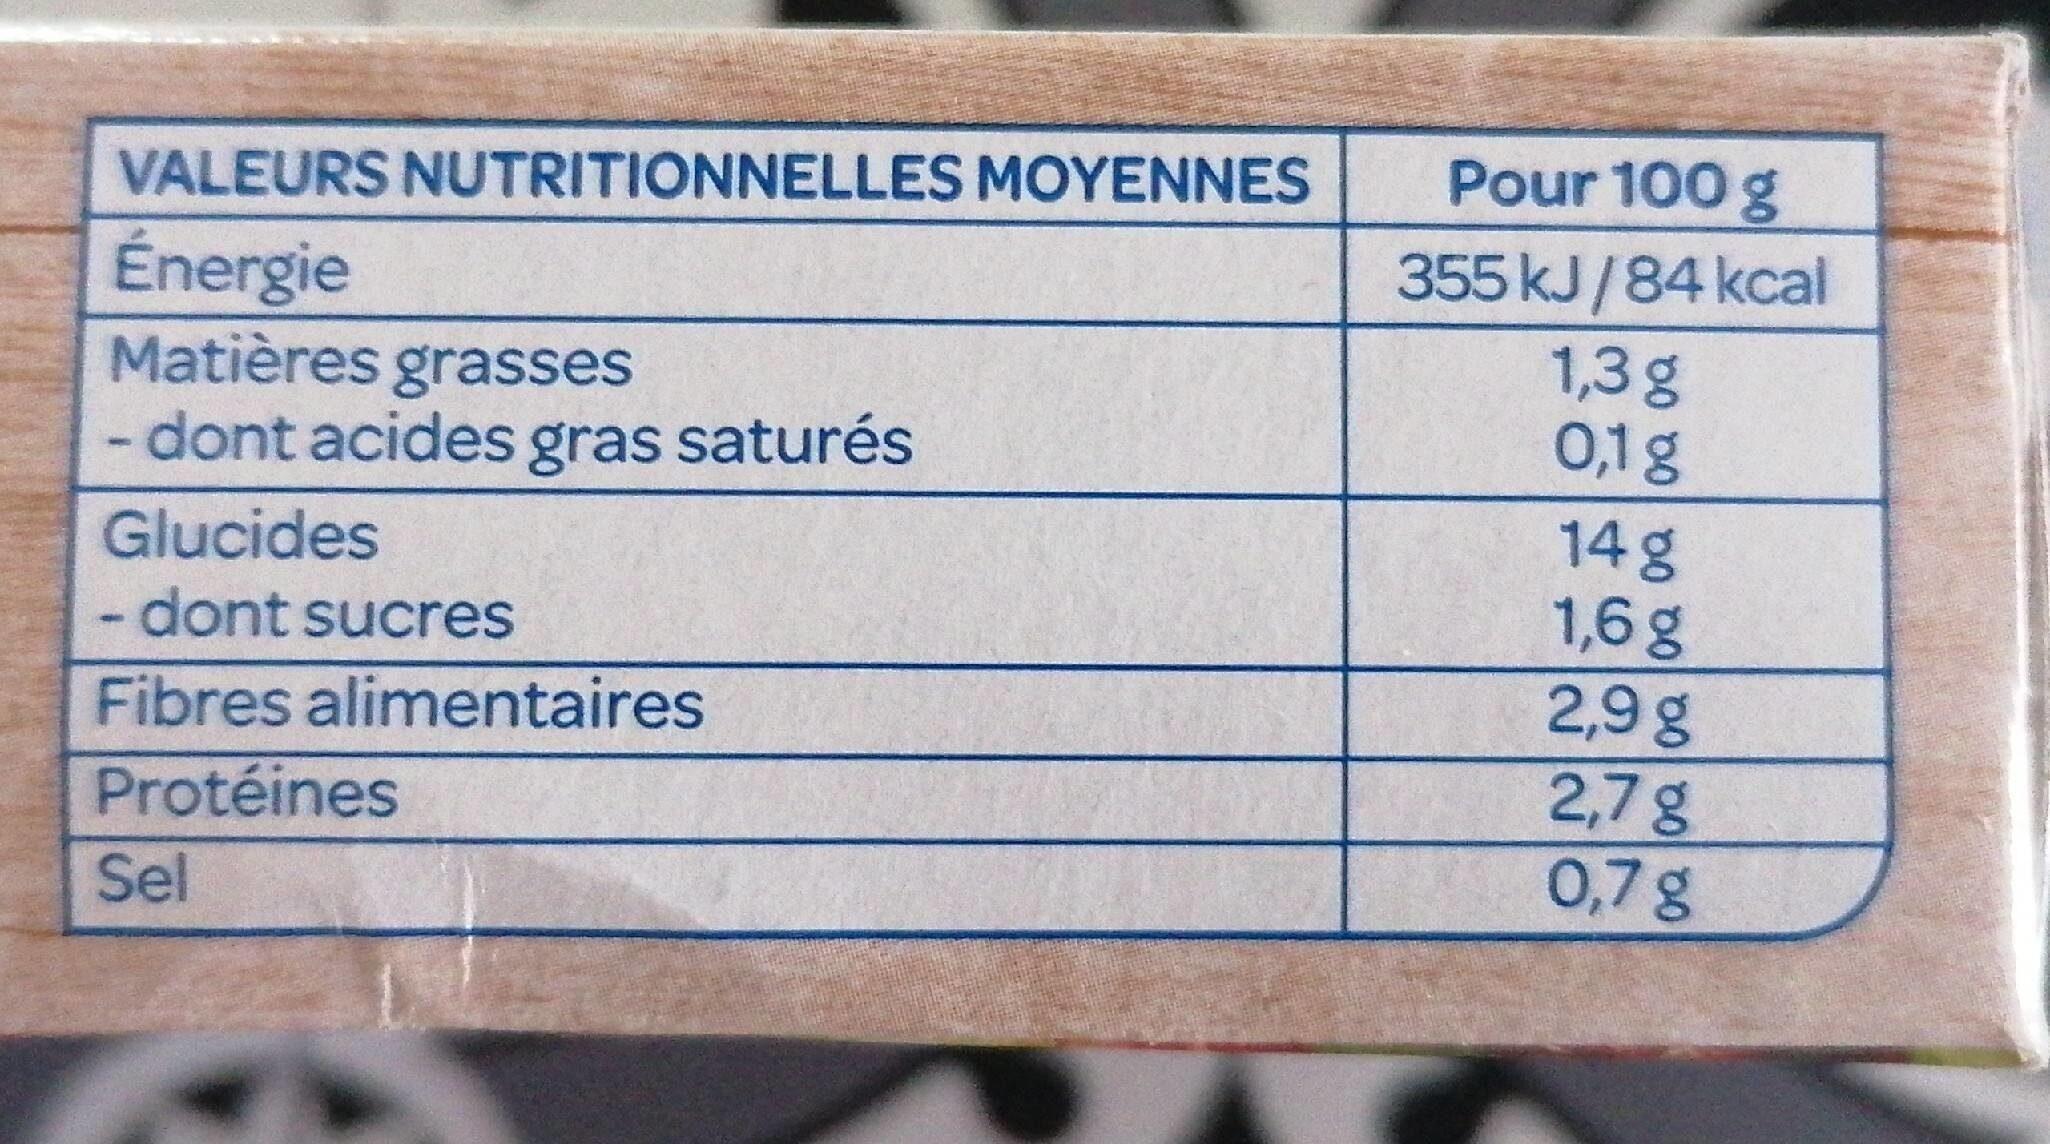 Galettes Polenta carottes courgettes lupin - Informations nutritionnelles - fr